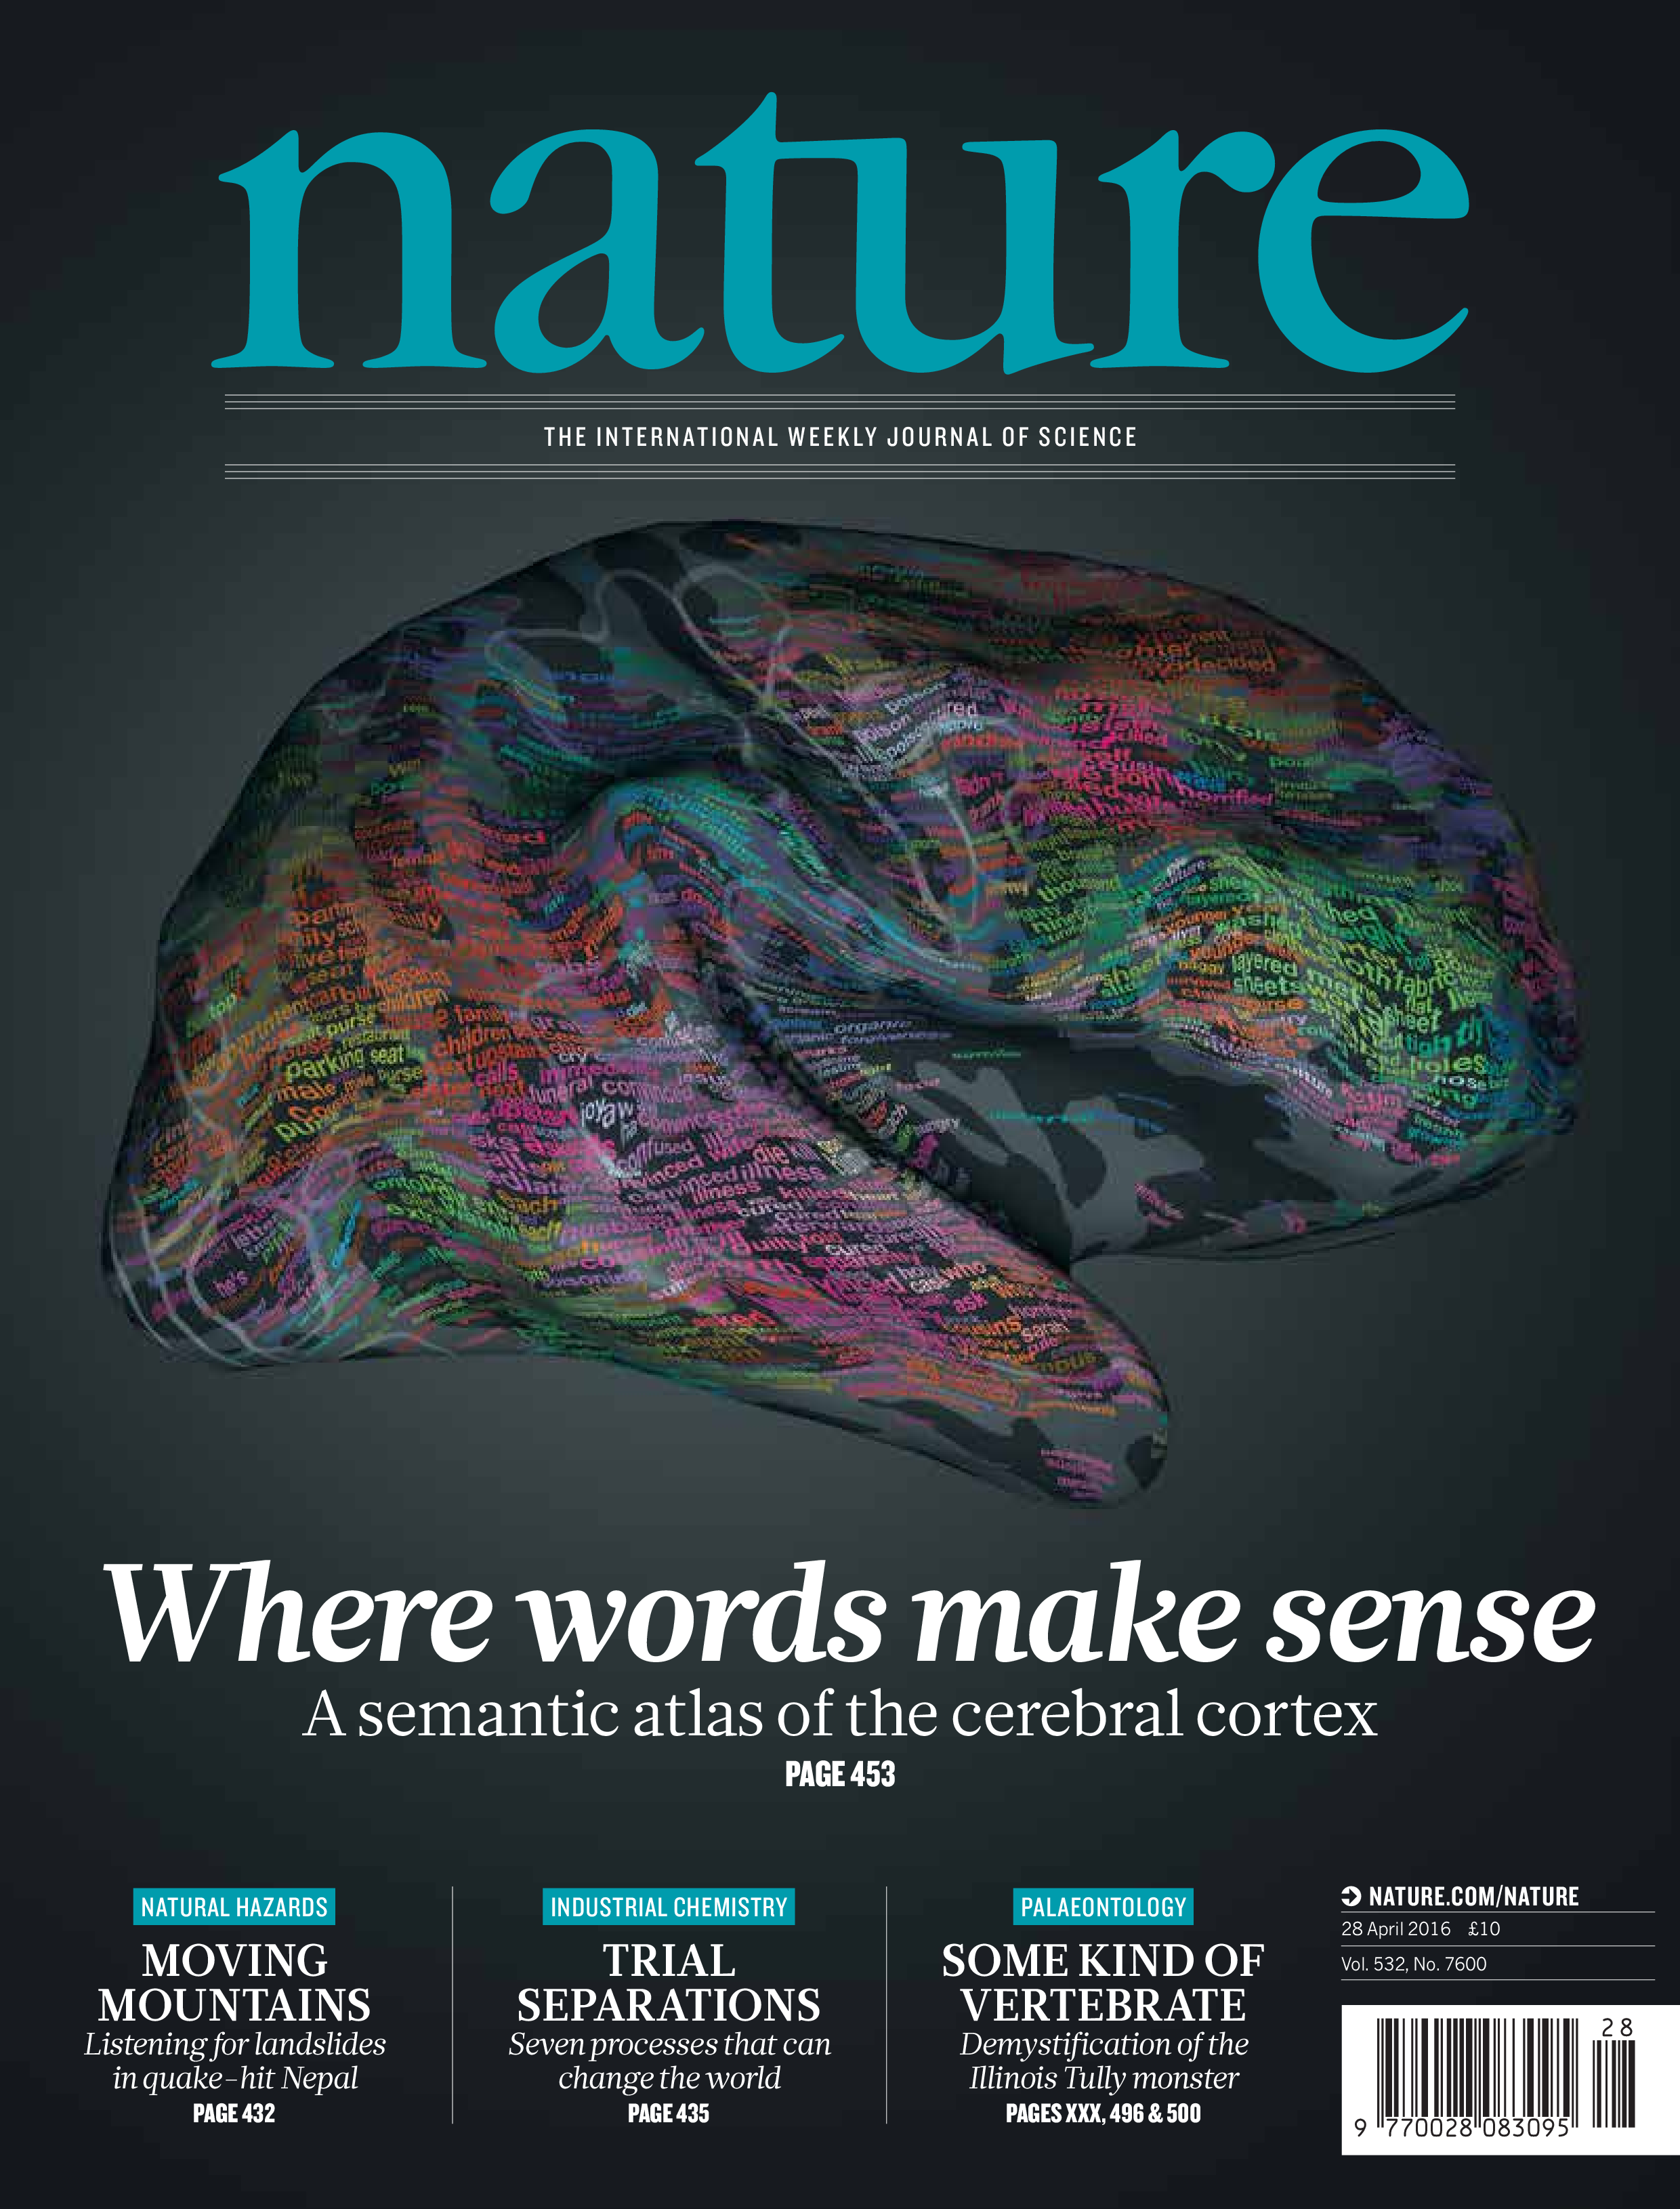 Nature article on our semantic atlas